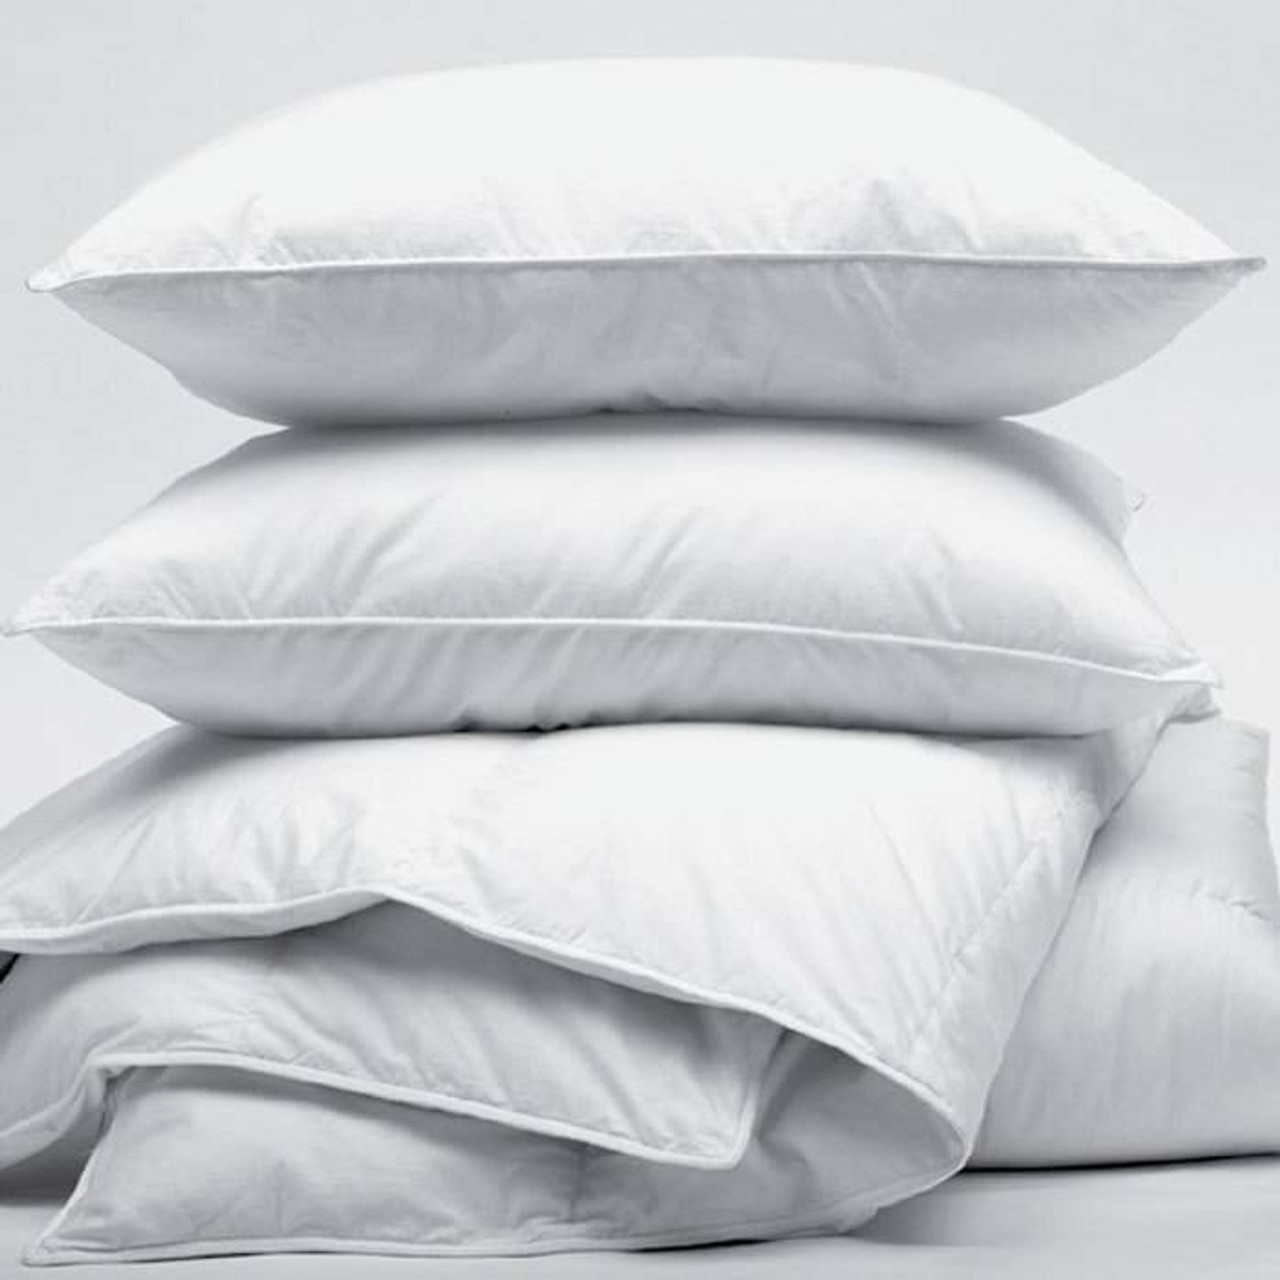 Ganesh Mills or Oxford Super Blend Ganesh Mills or Oxford Gold or Pillow w/ Synthetic Down or Pack of 8-12